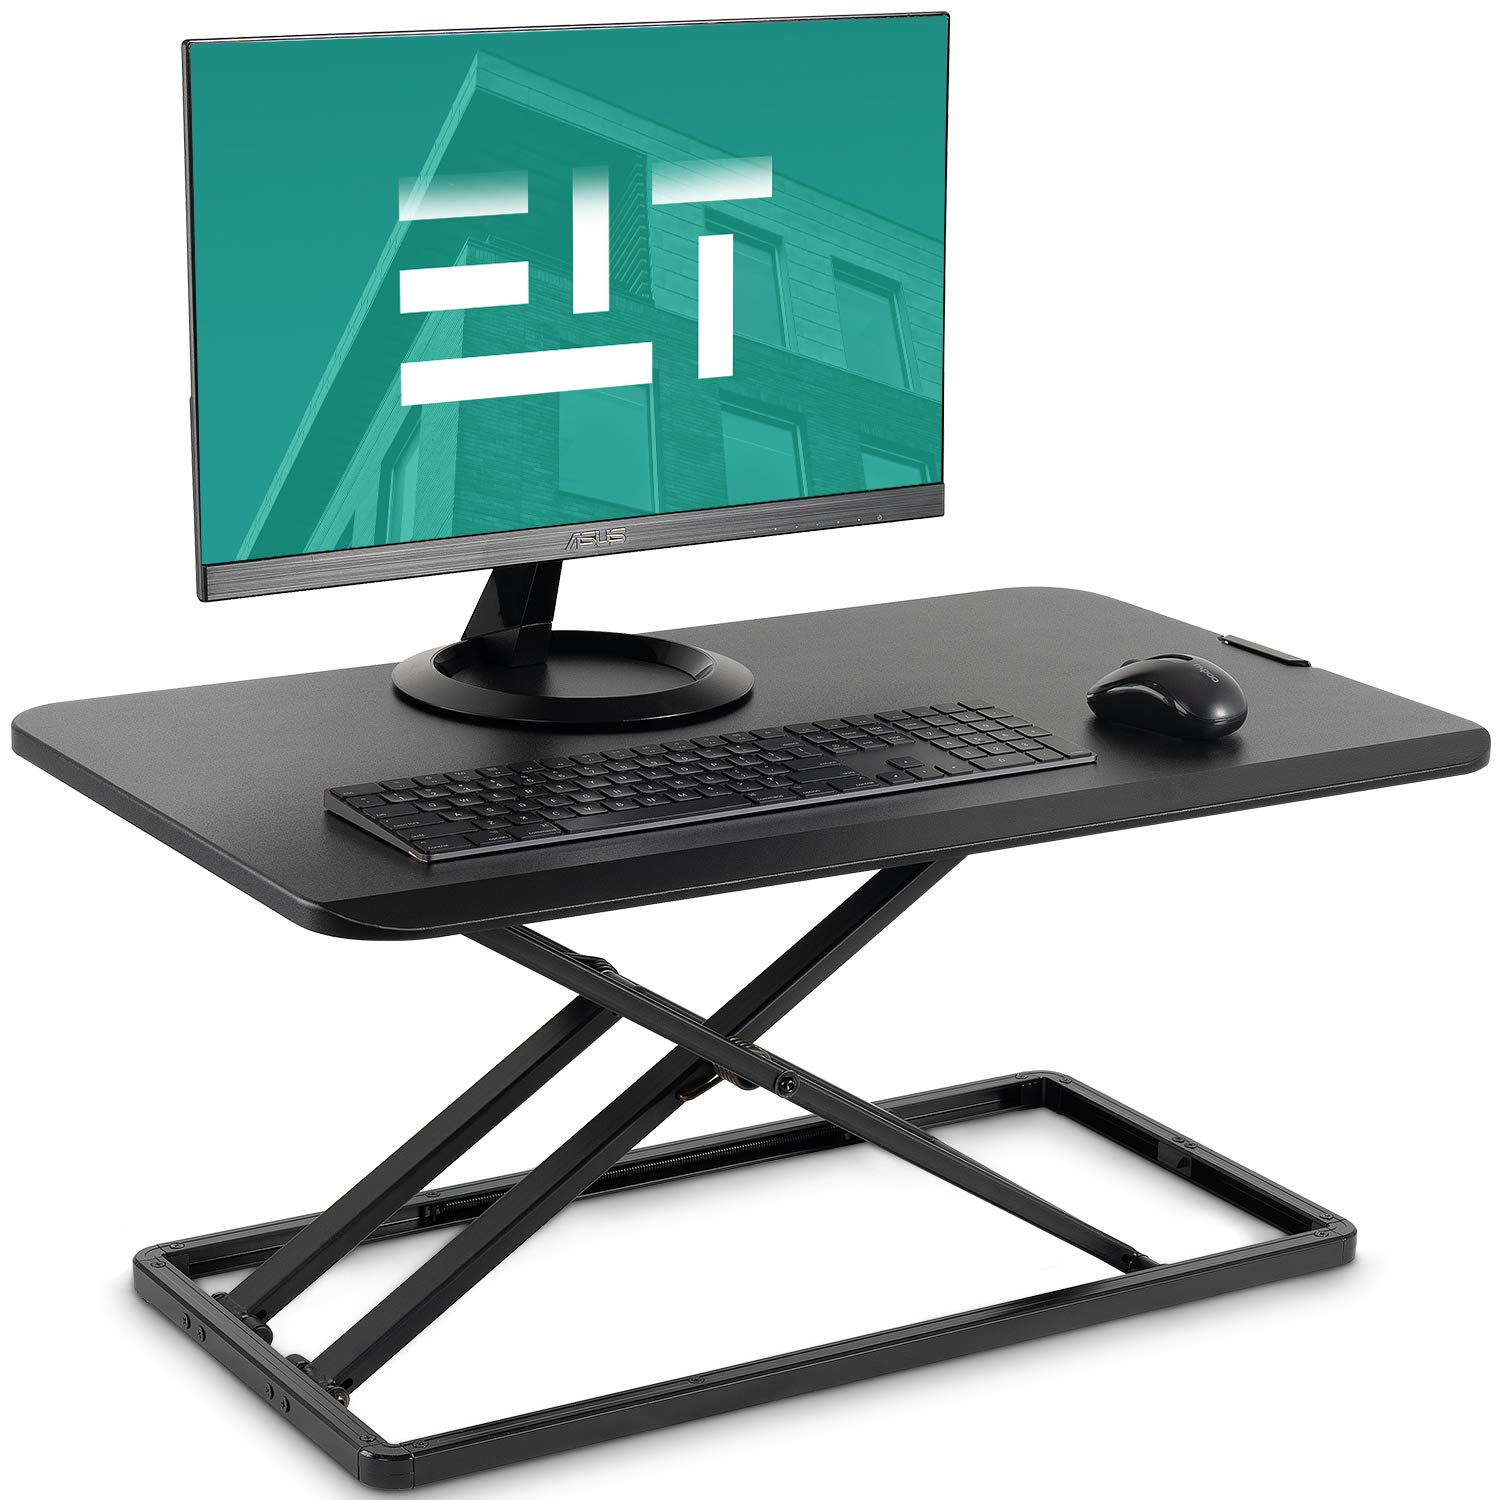 EleTab Standing Desk Converter Sit to Stand up Desk Riser Ultra Slim Desktop Elevating Workstation 29 inches (Black) by EleTab